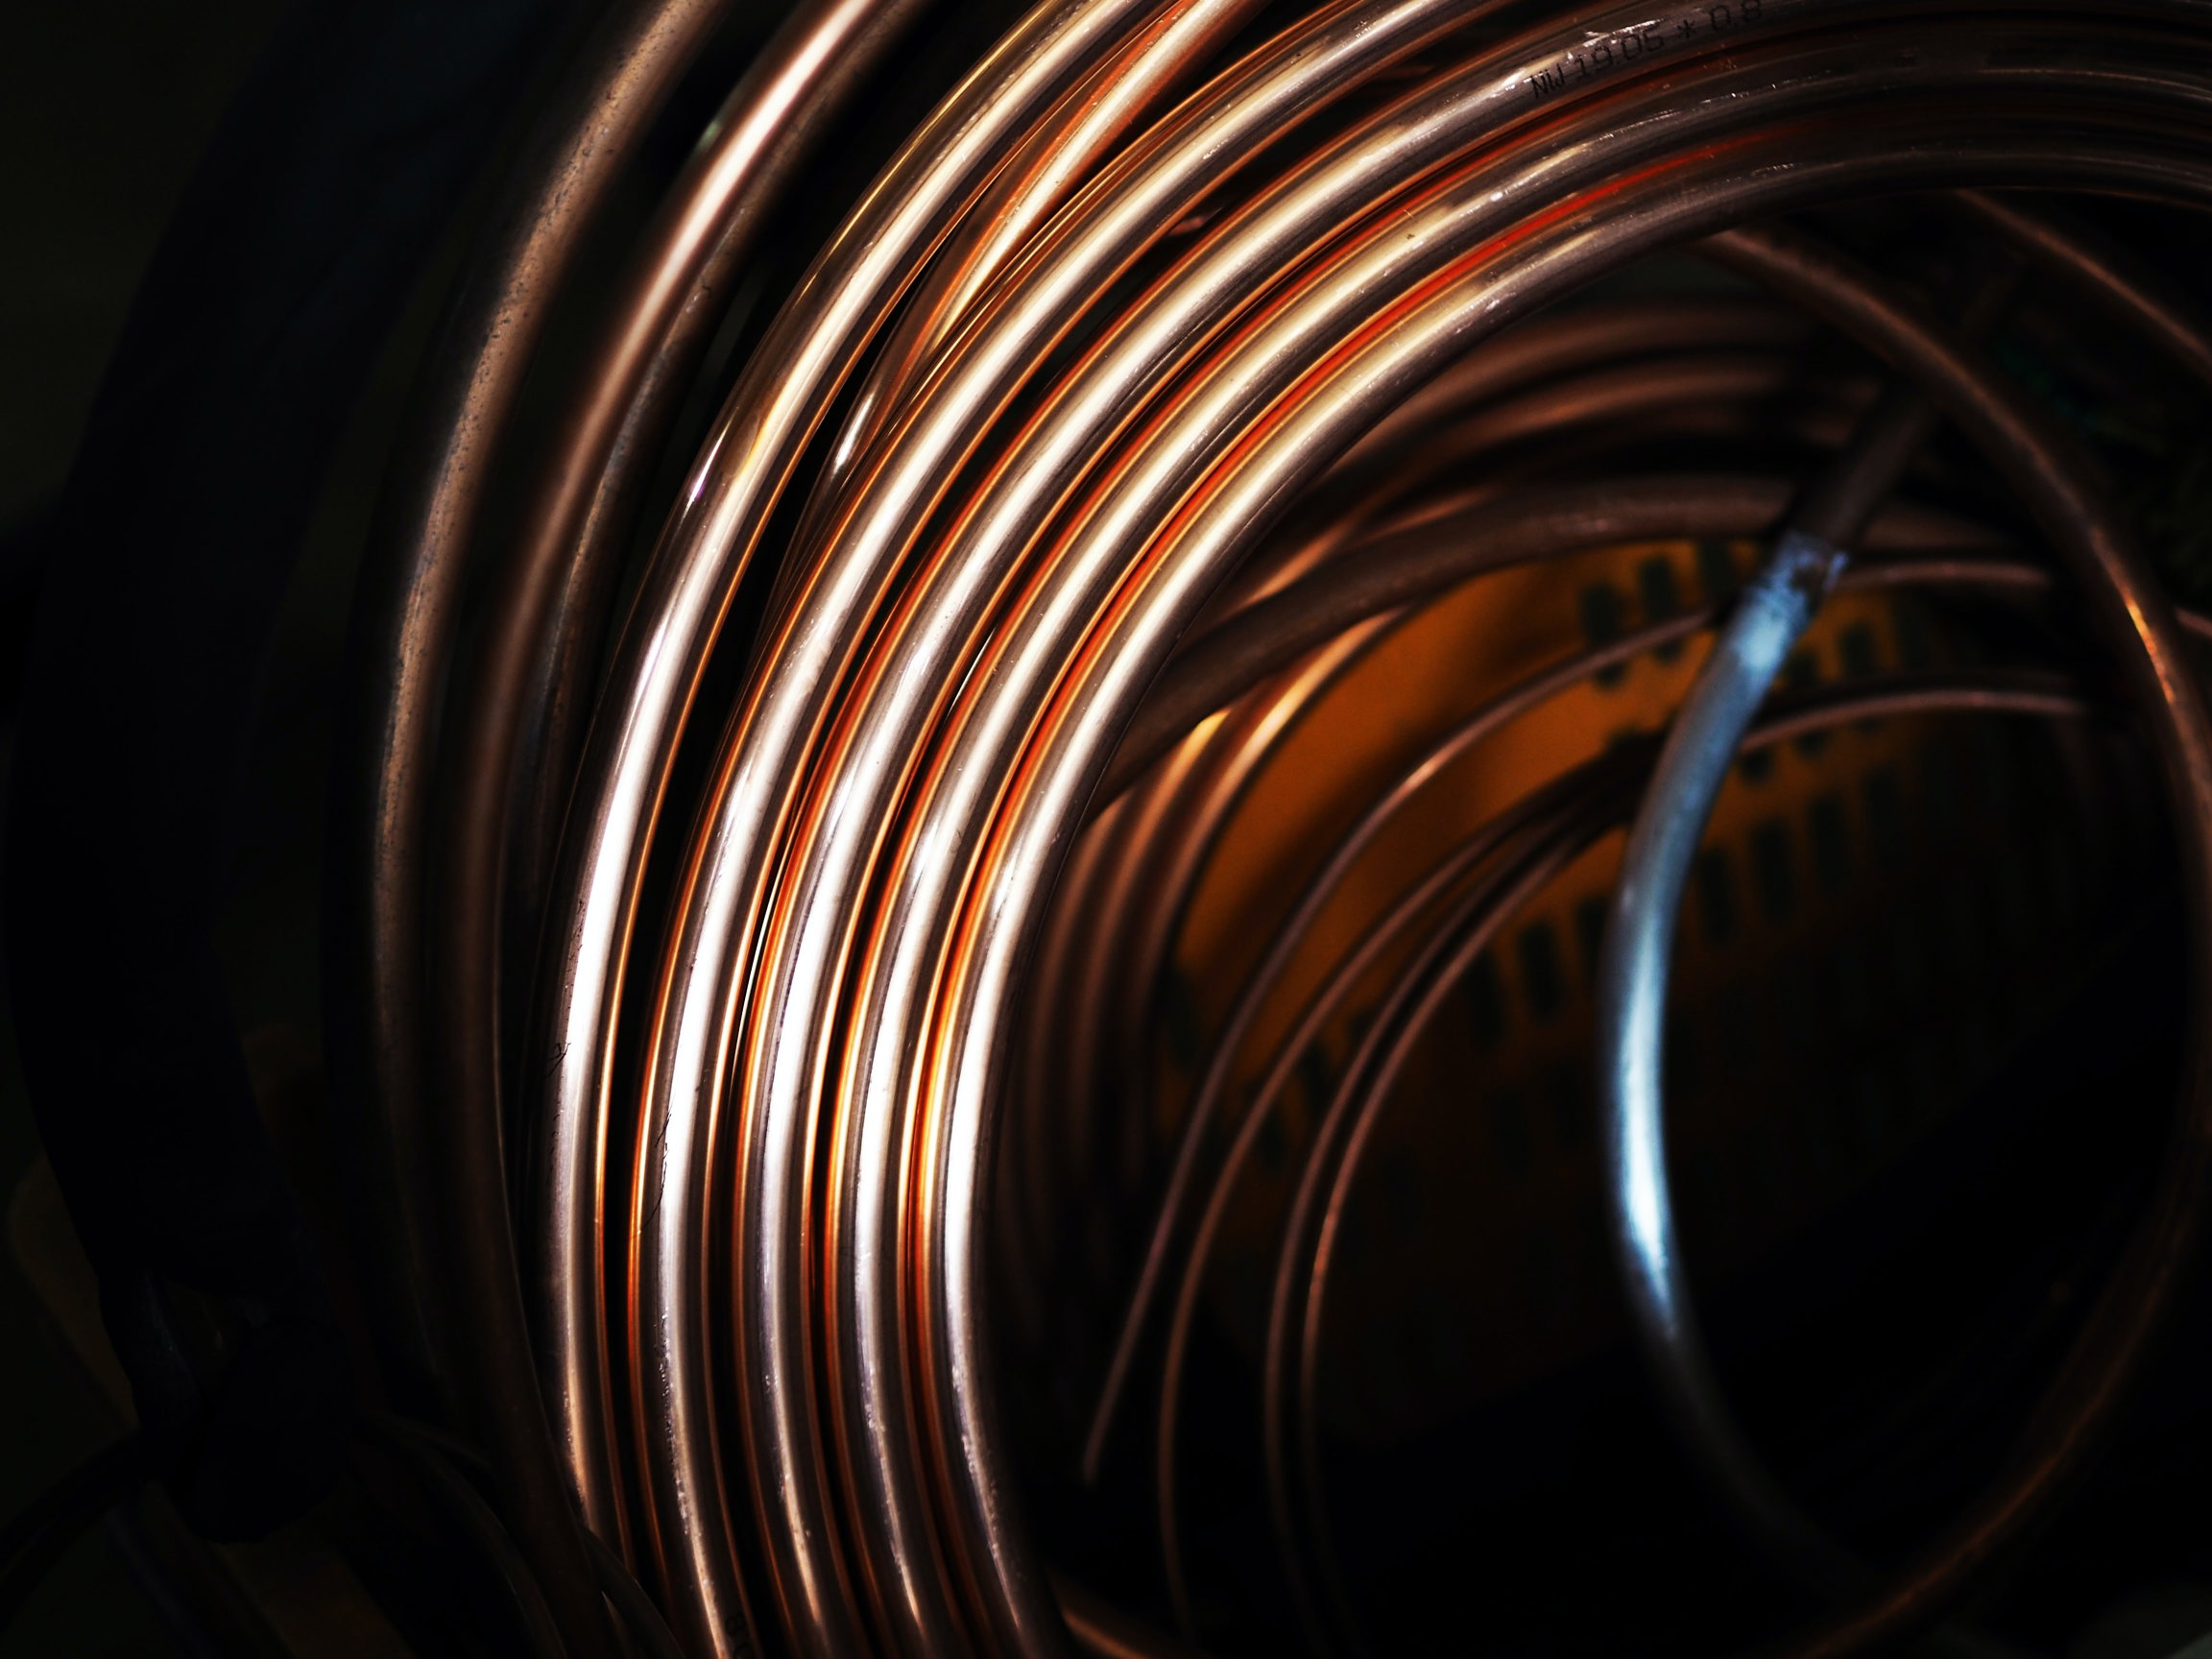 COPPER ETFS STOCKS NEWS AND ANALYSIS